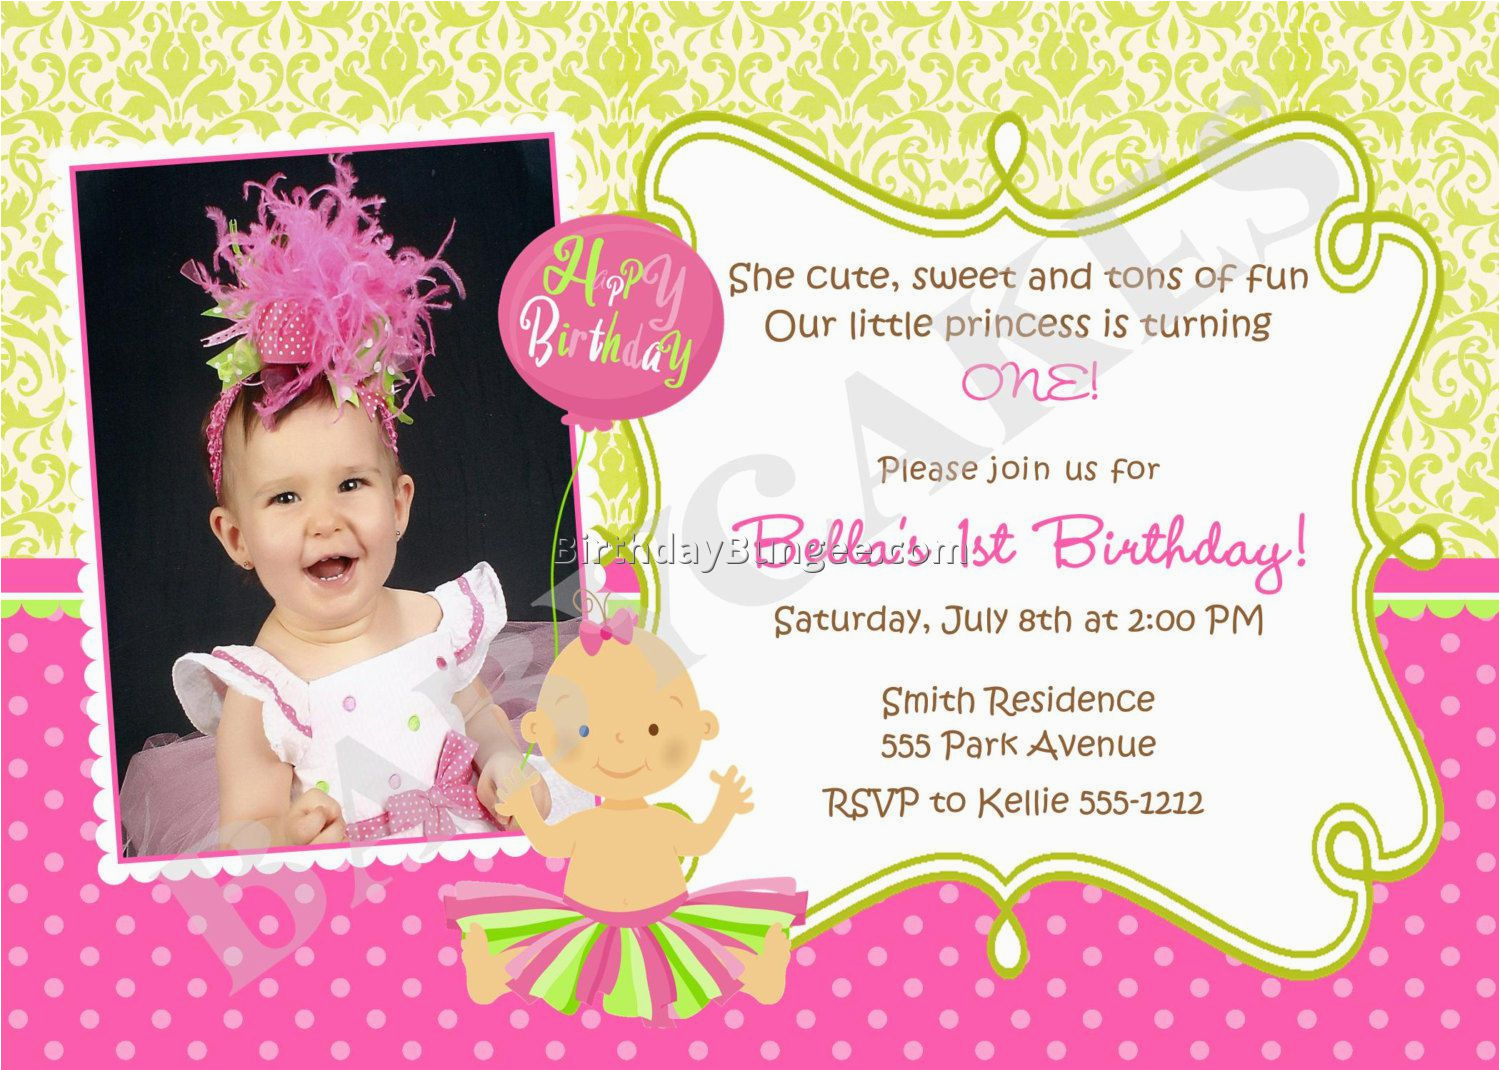 Girl Birthday Invitation Message 21 Kids Birthday Invitation Wording that We Can Make